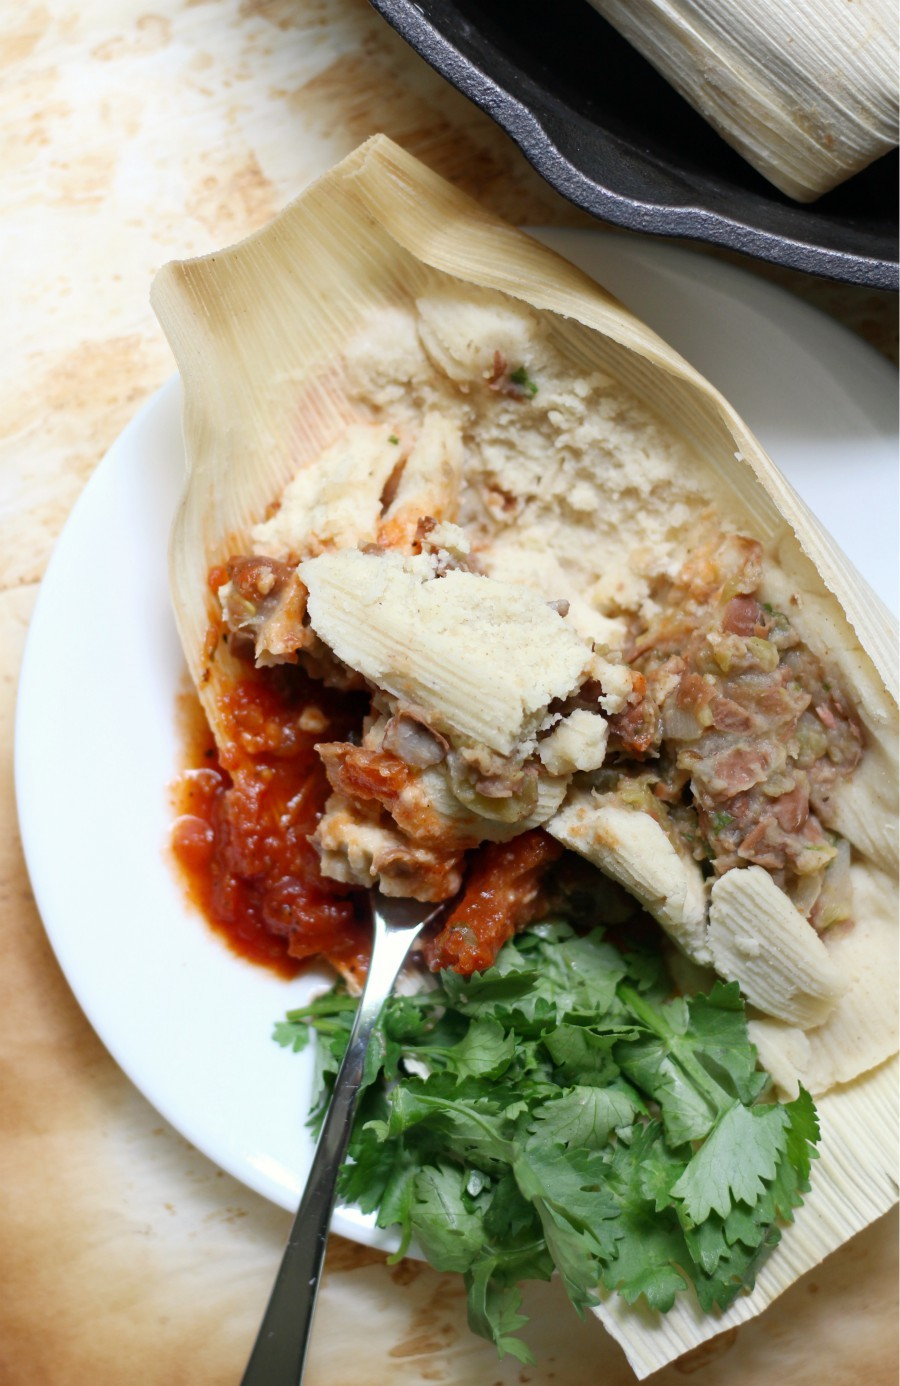 Gluten-Free Pinto Bean Tamales (Vegan, Allergy-Free) | Strength and Sunshine @RebeccaGF666 An easy Mexican tamale recipe with a homemade masa dough and spicy pinto bean filling. These Gluten-Free Pinto Bean Tamales are vegan and top 8 allergy-free, making them a great meatless weeknight meal the whole family will love! #tamales #pintobeans #glutenfree #vegan #mexican #allergyfree #strengthandsunshine